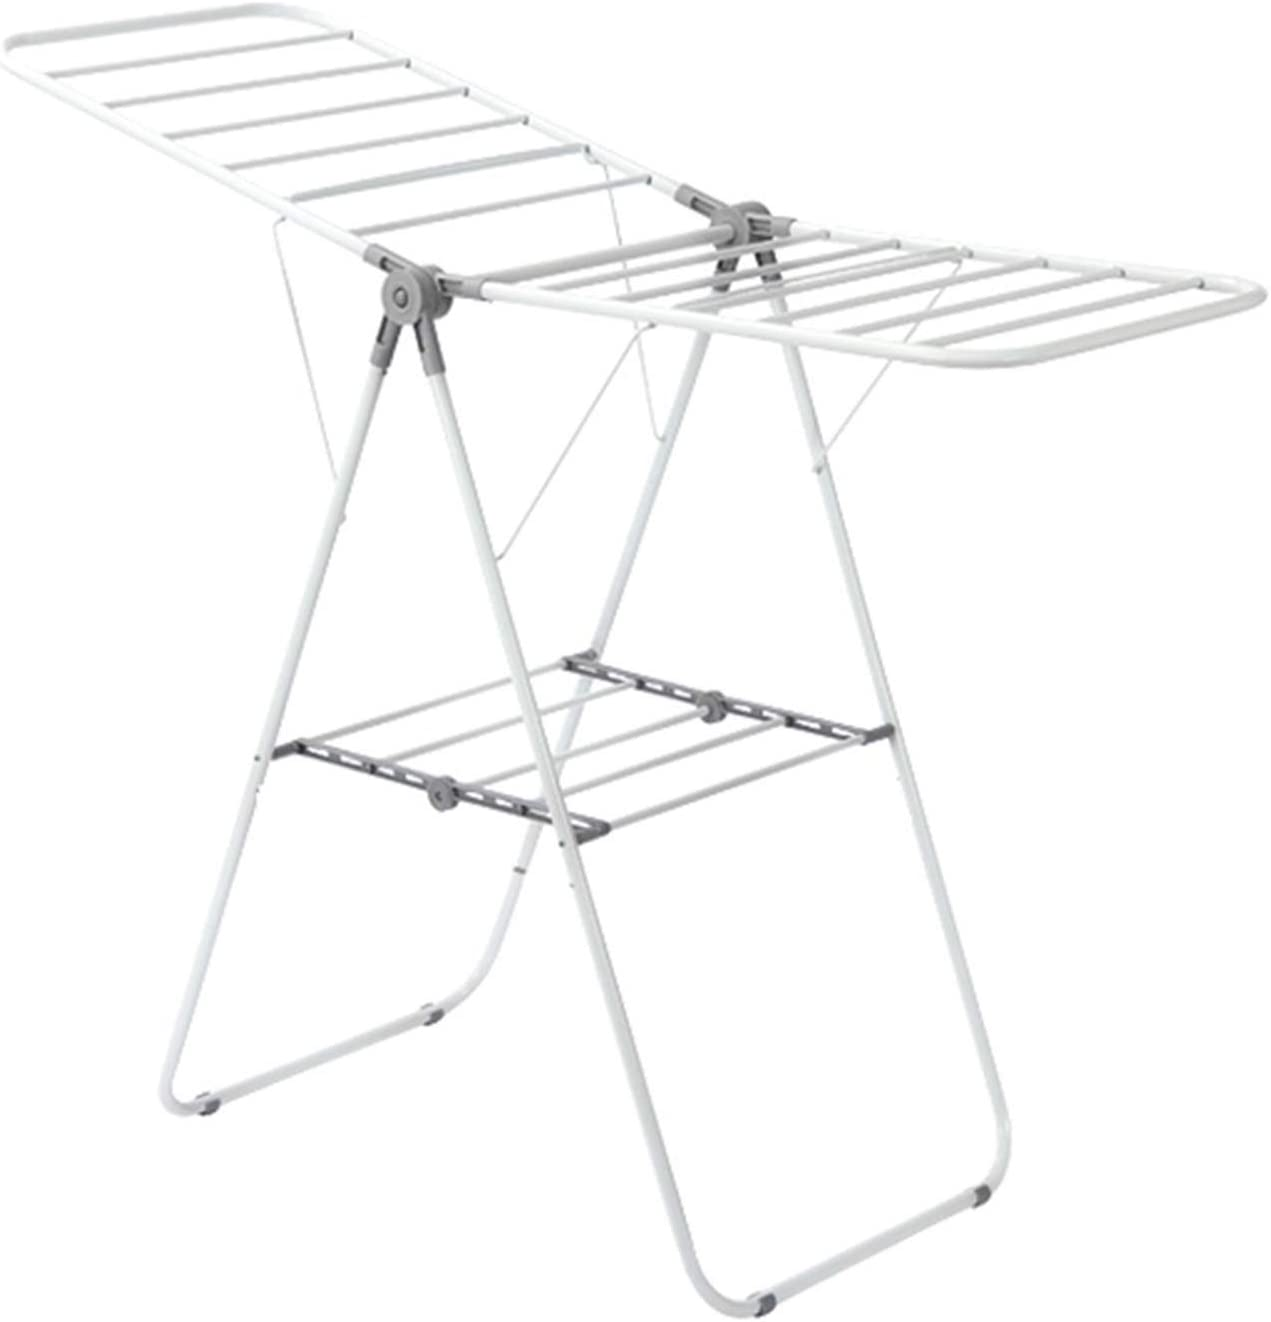 XIAOQIU Beauty products Clothes Drying Rack Japan's largest assortment Household Laundry for